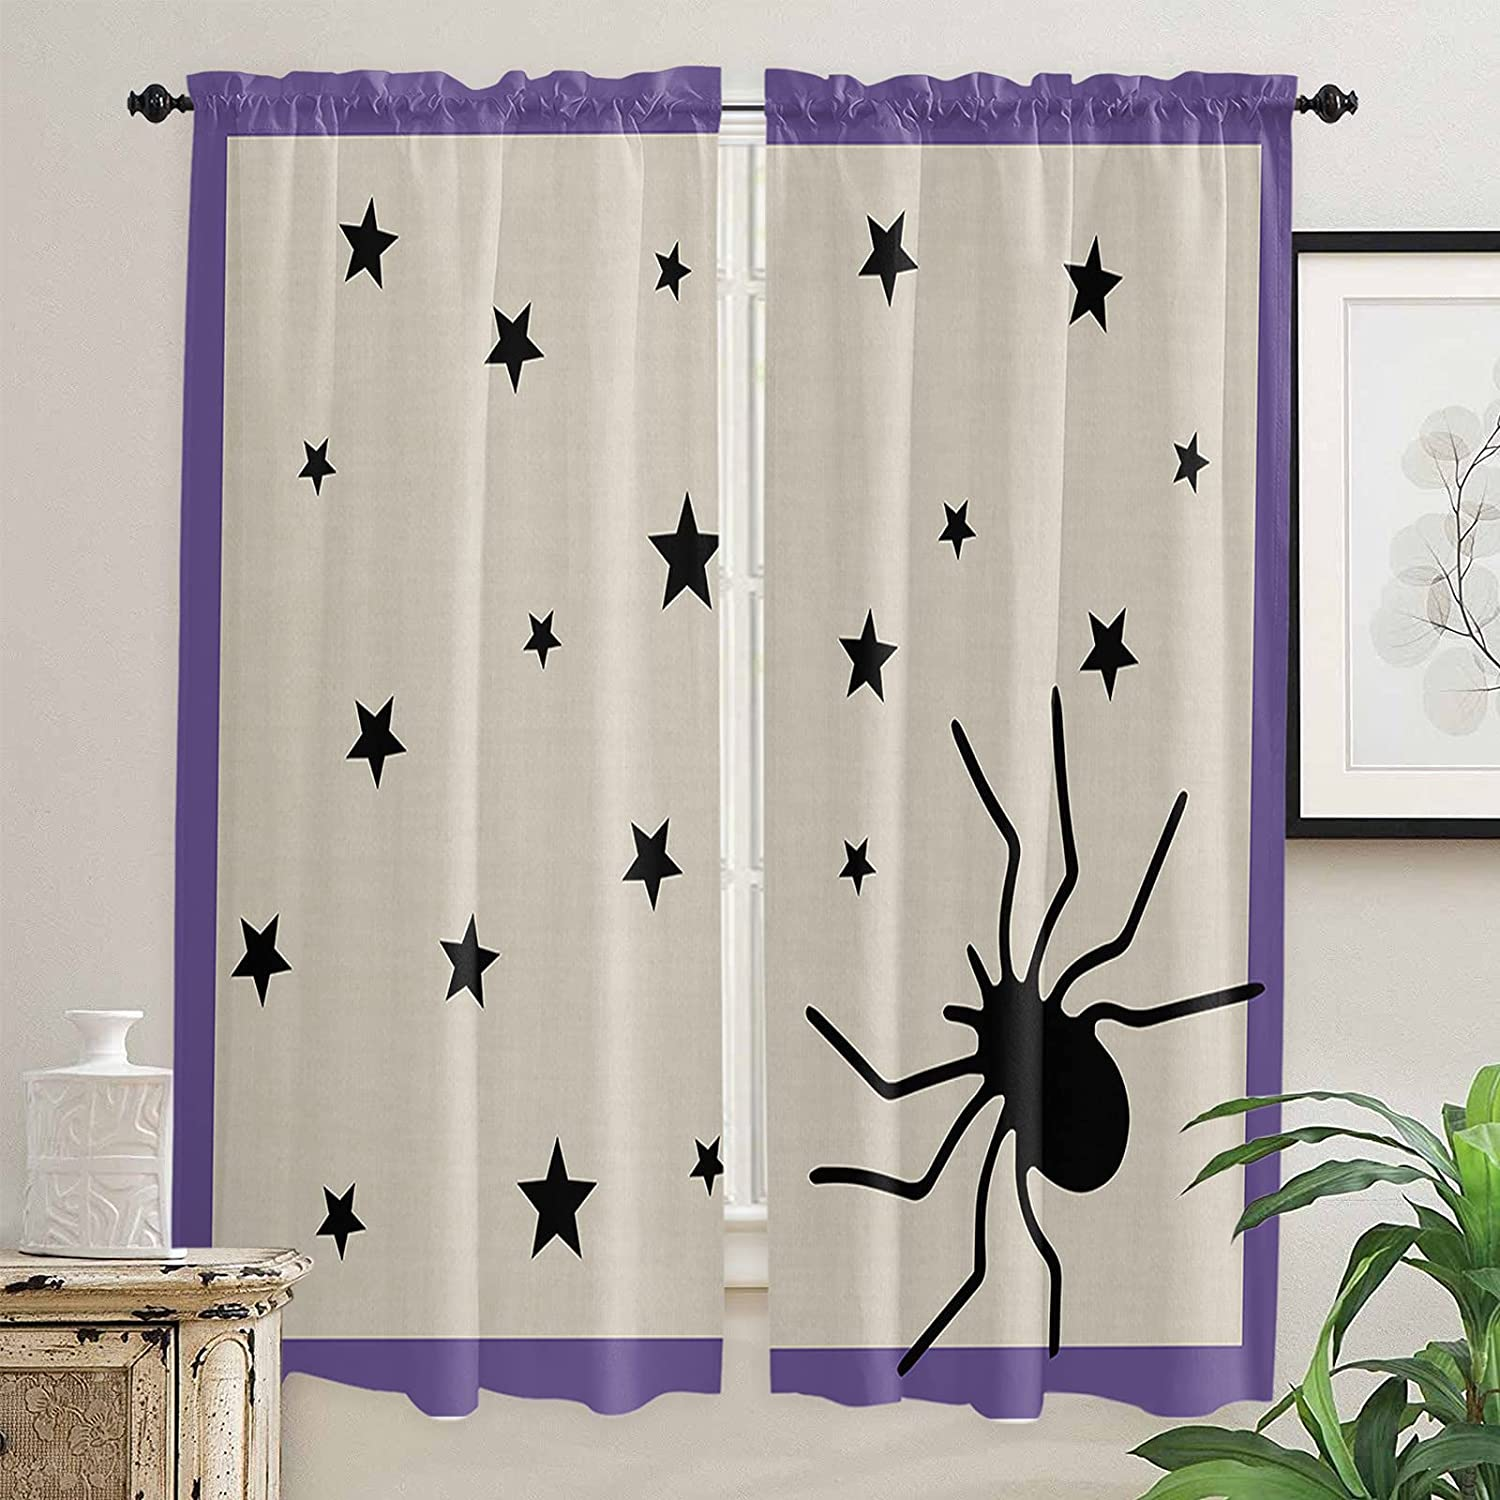 Black Miami Mall Animal Kitchen Curtains ! Super beauty product restock quality top! 72 Length Inch Purple Windows for